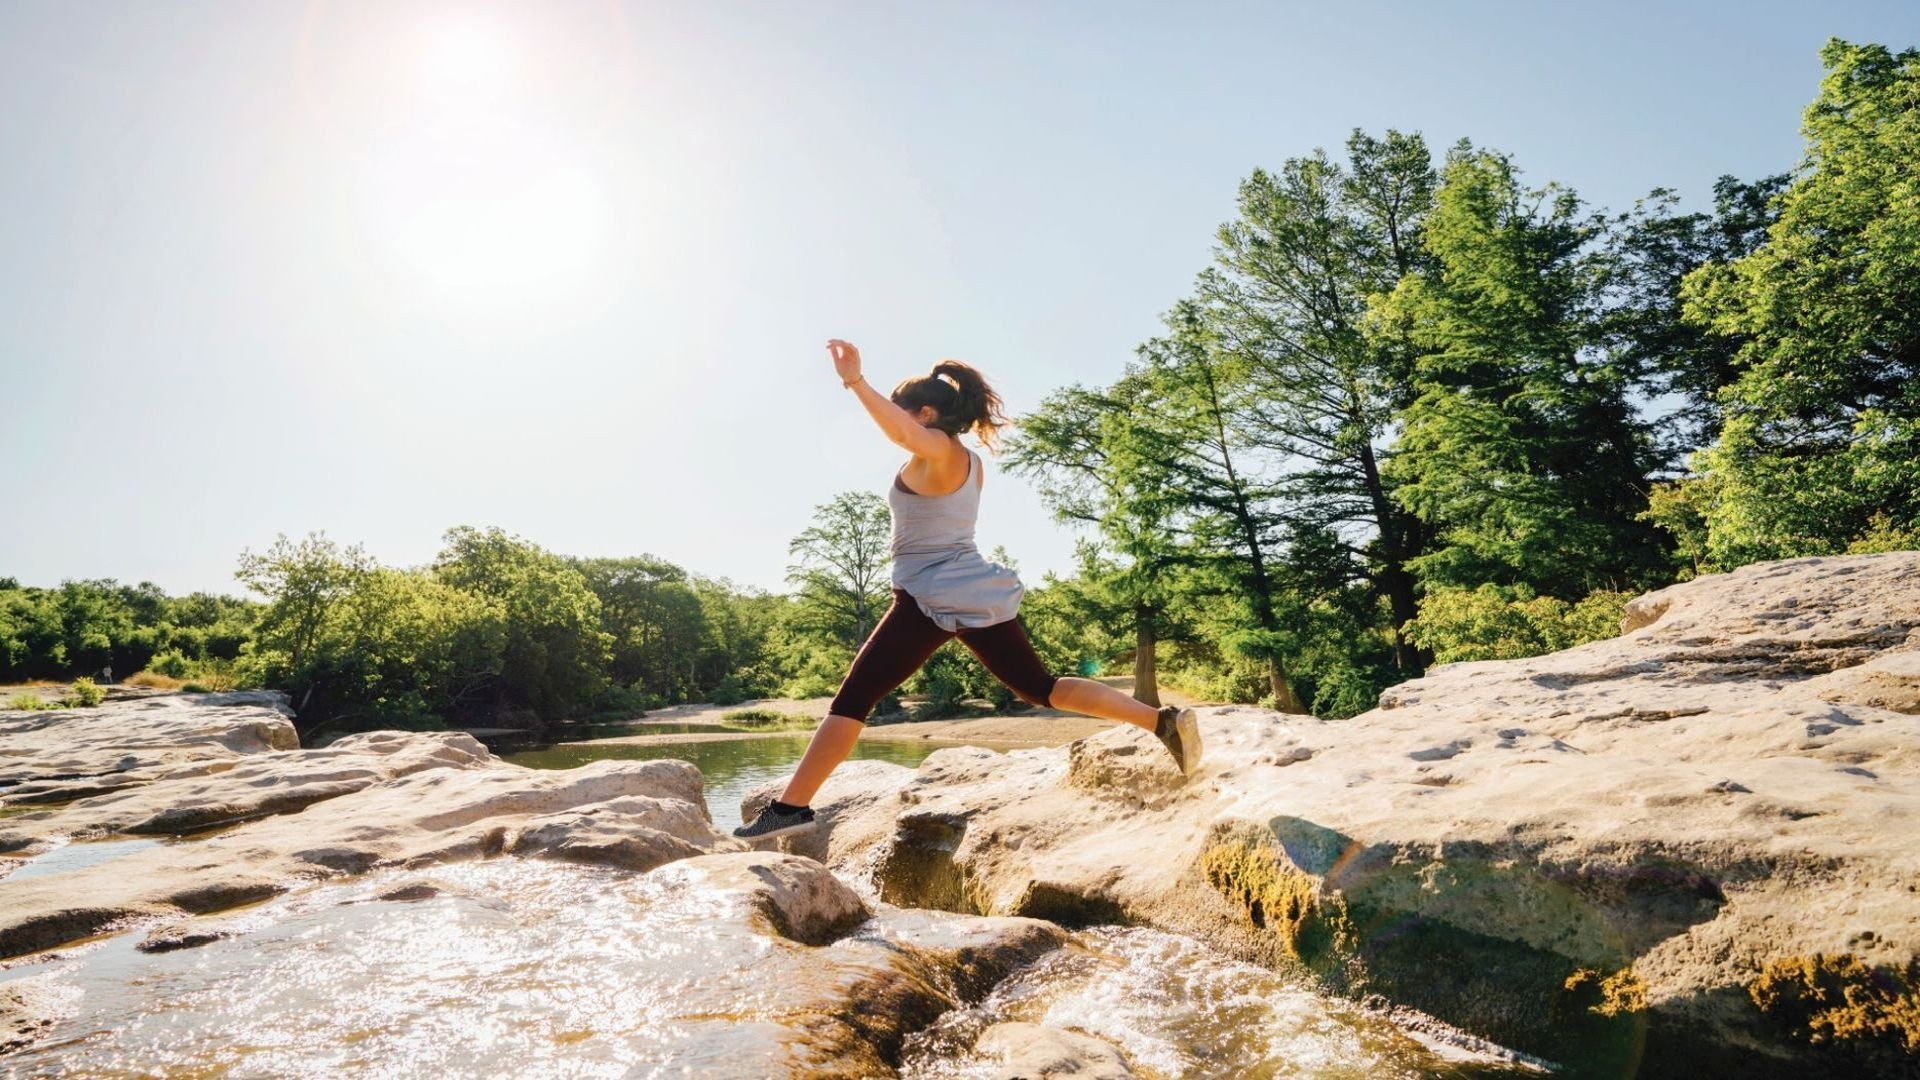 Image of a woman jumping over rocks on a hiking trail